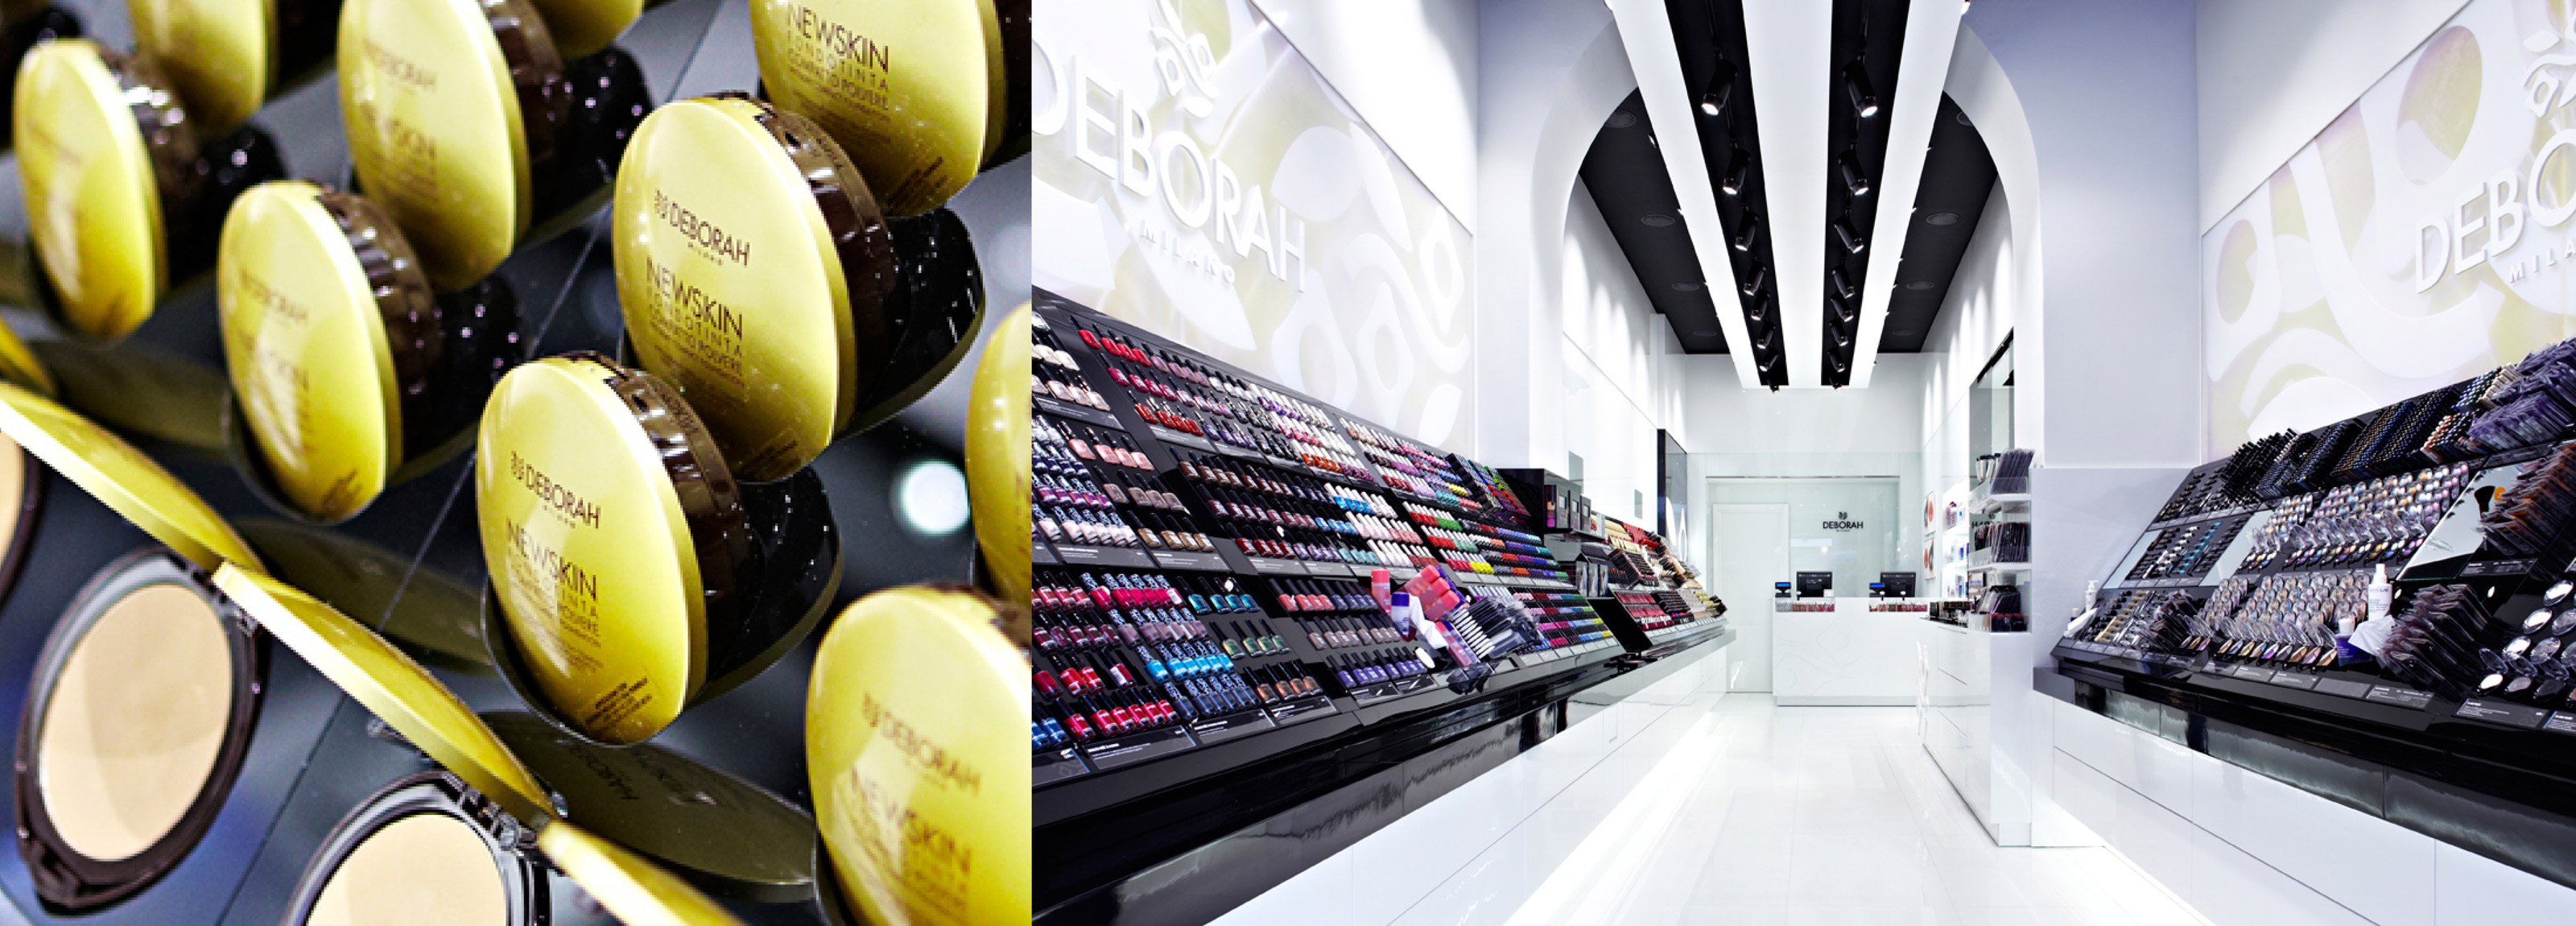 Retail design signed by Hangar Design group for the flagship store of the beauty brand Deborah Milano.